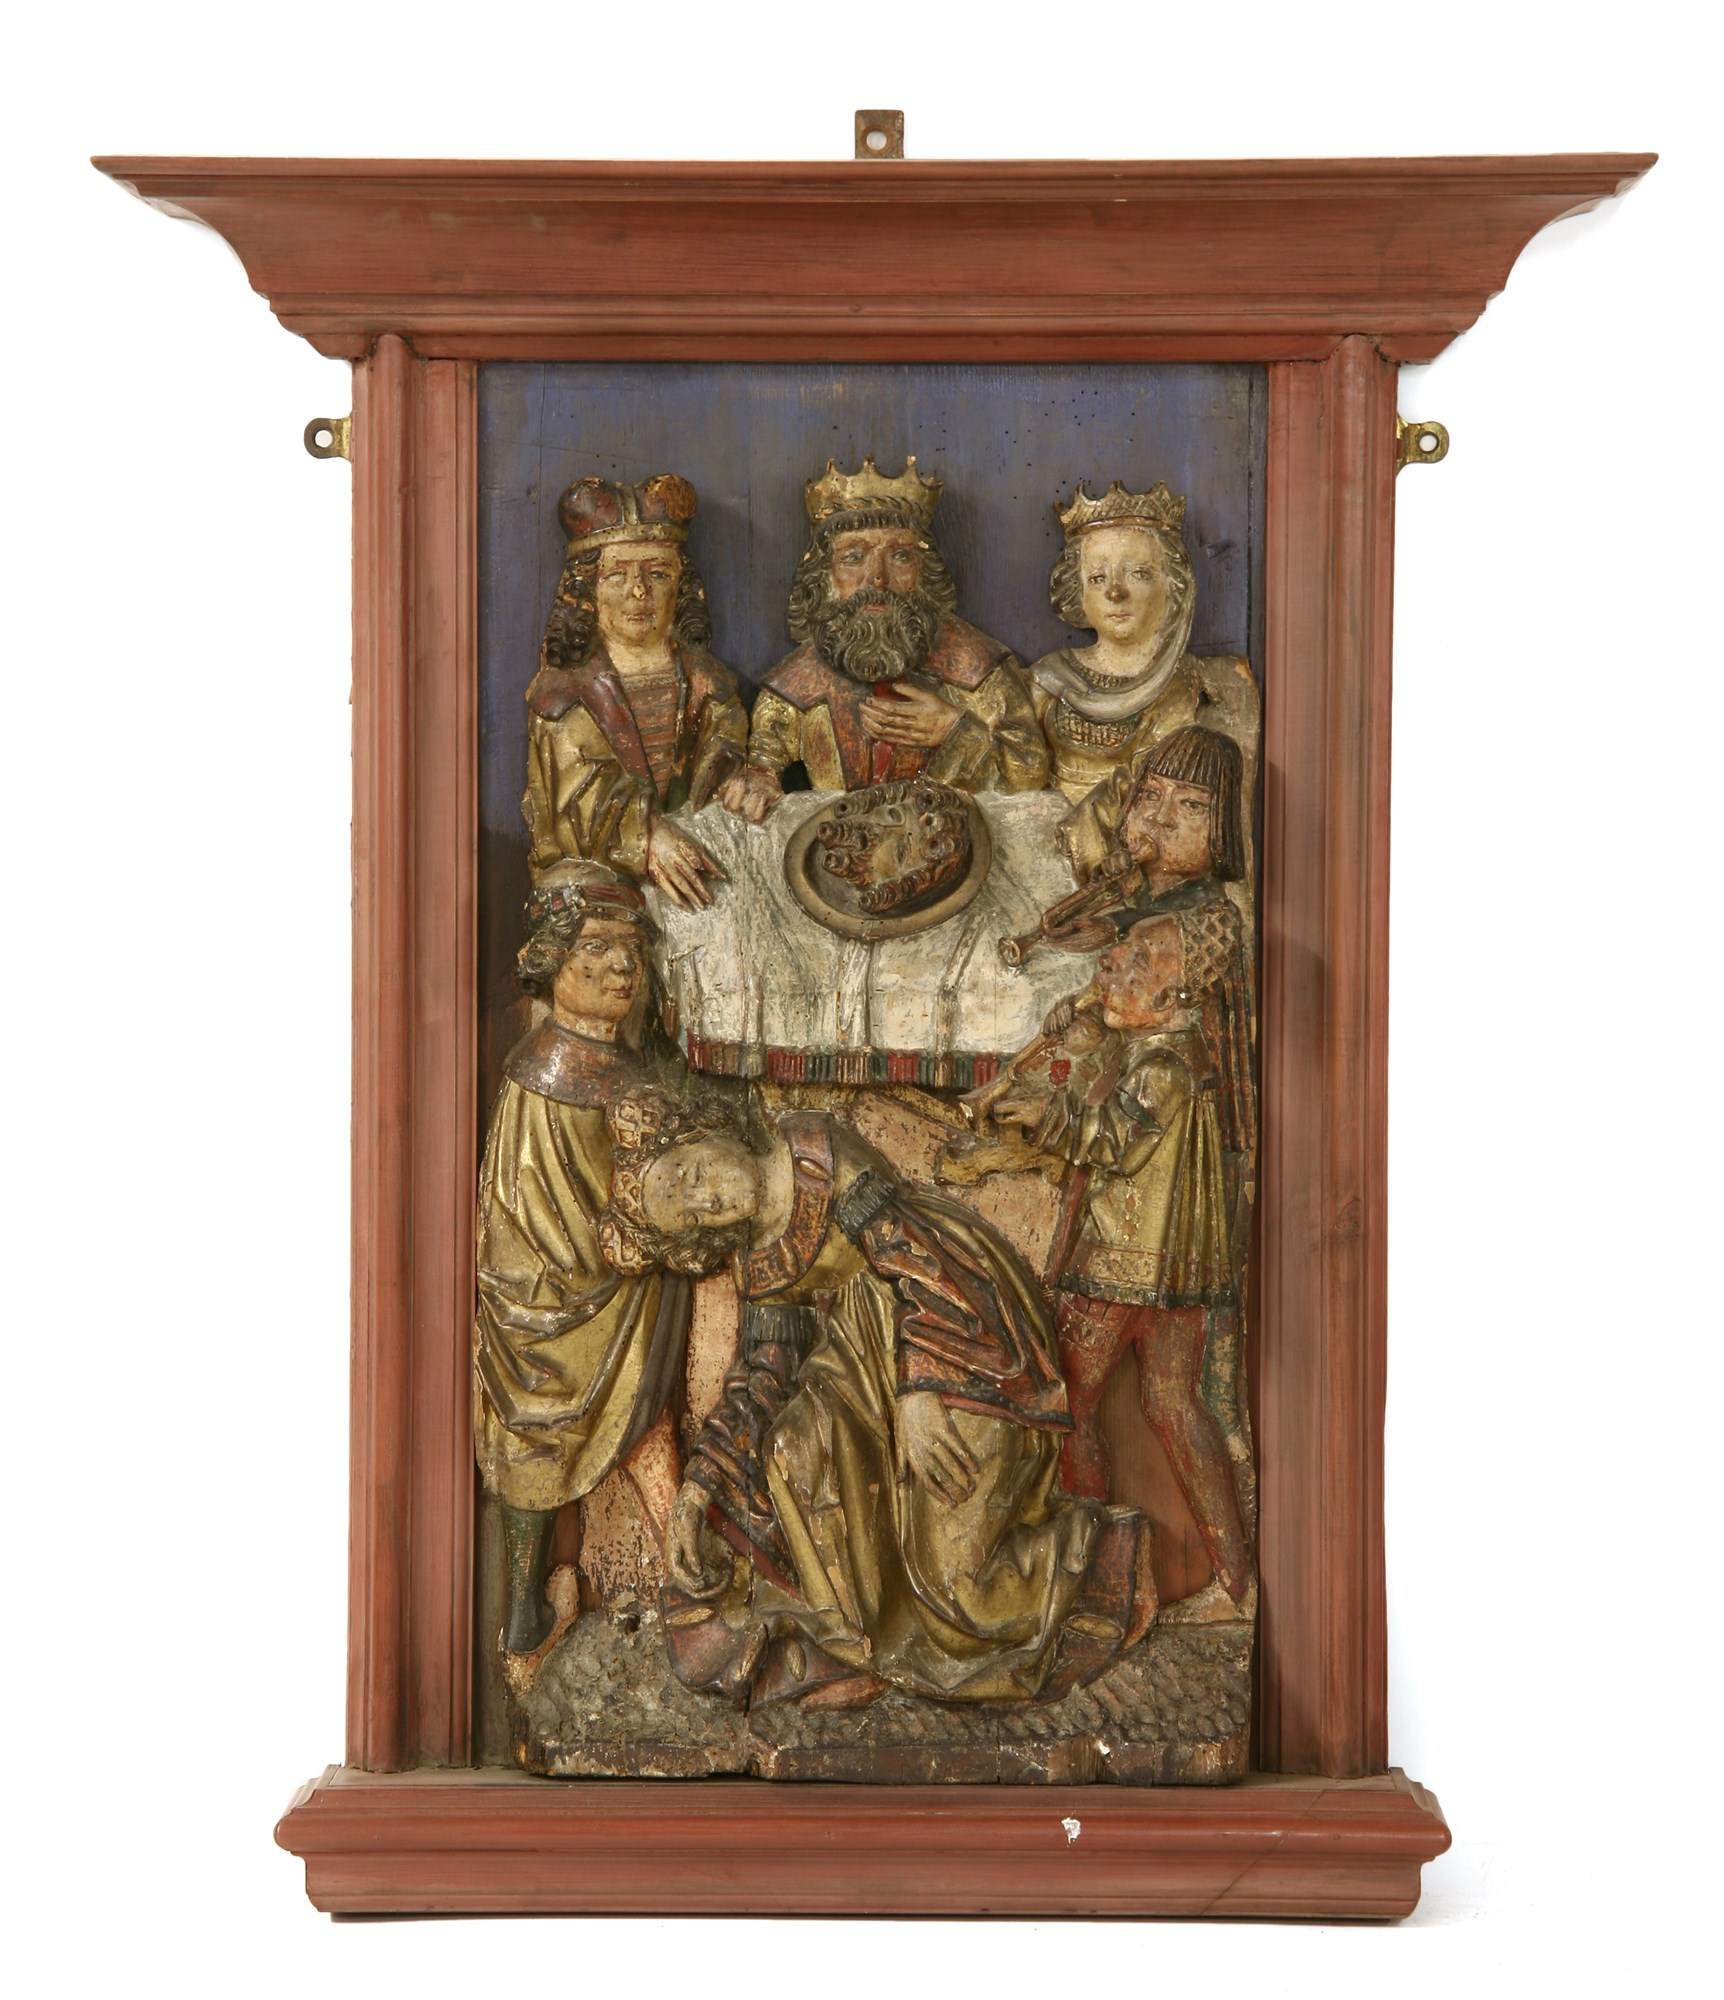 Rheinish carving showing Herod and Salome (estimated for sale at £5,000-7,000)